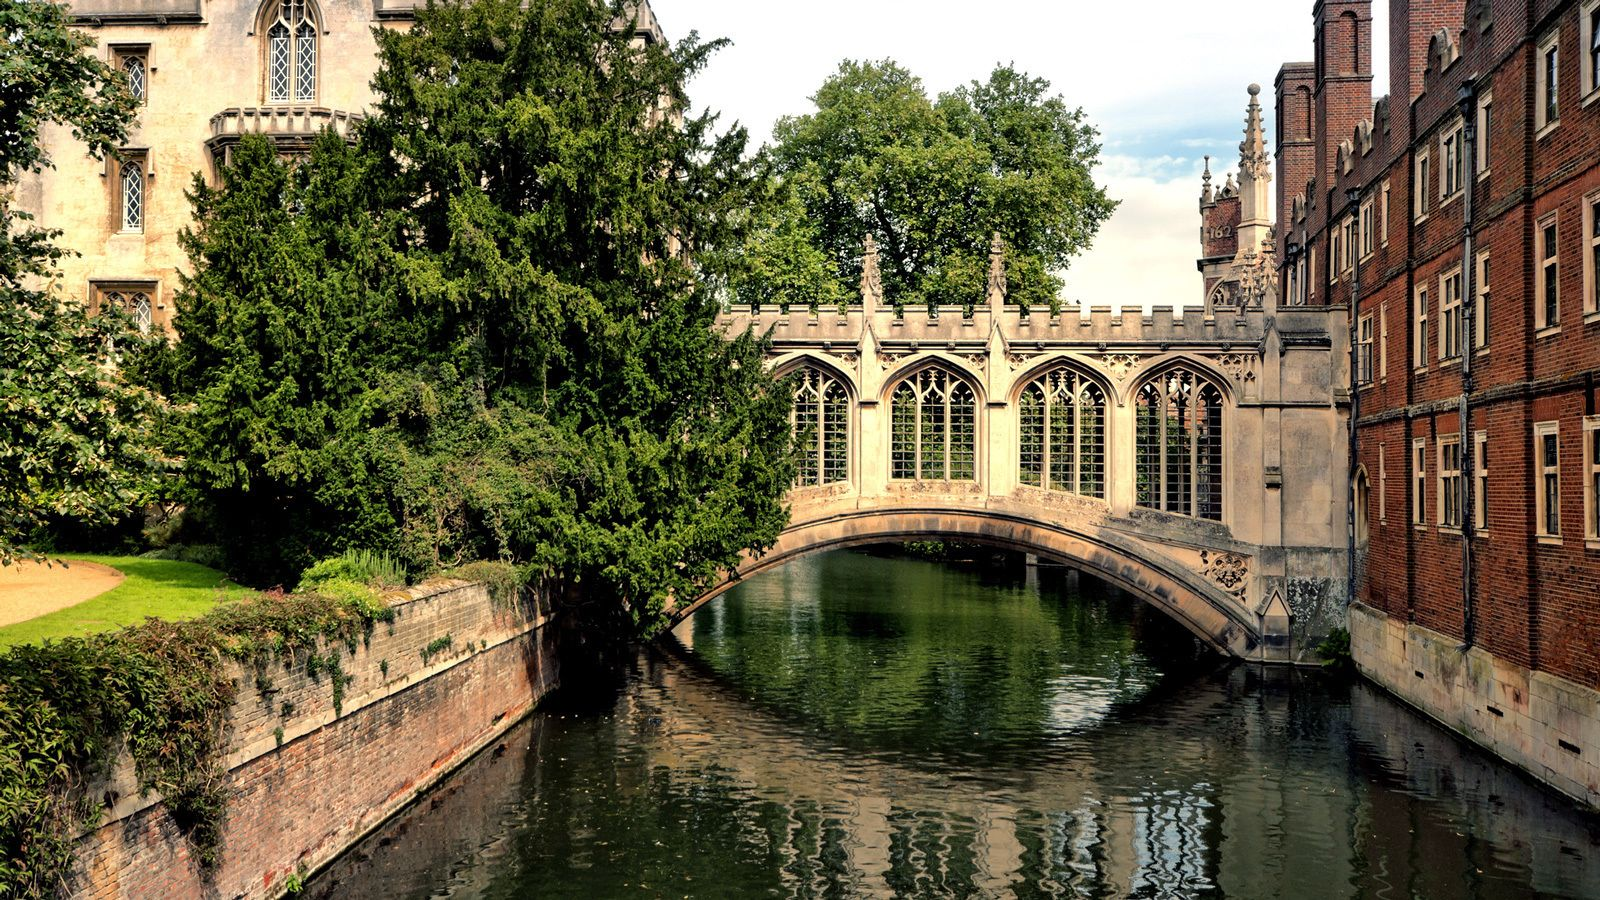 Full-Day Tour of Oxford & Cambridge with Admissions